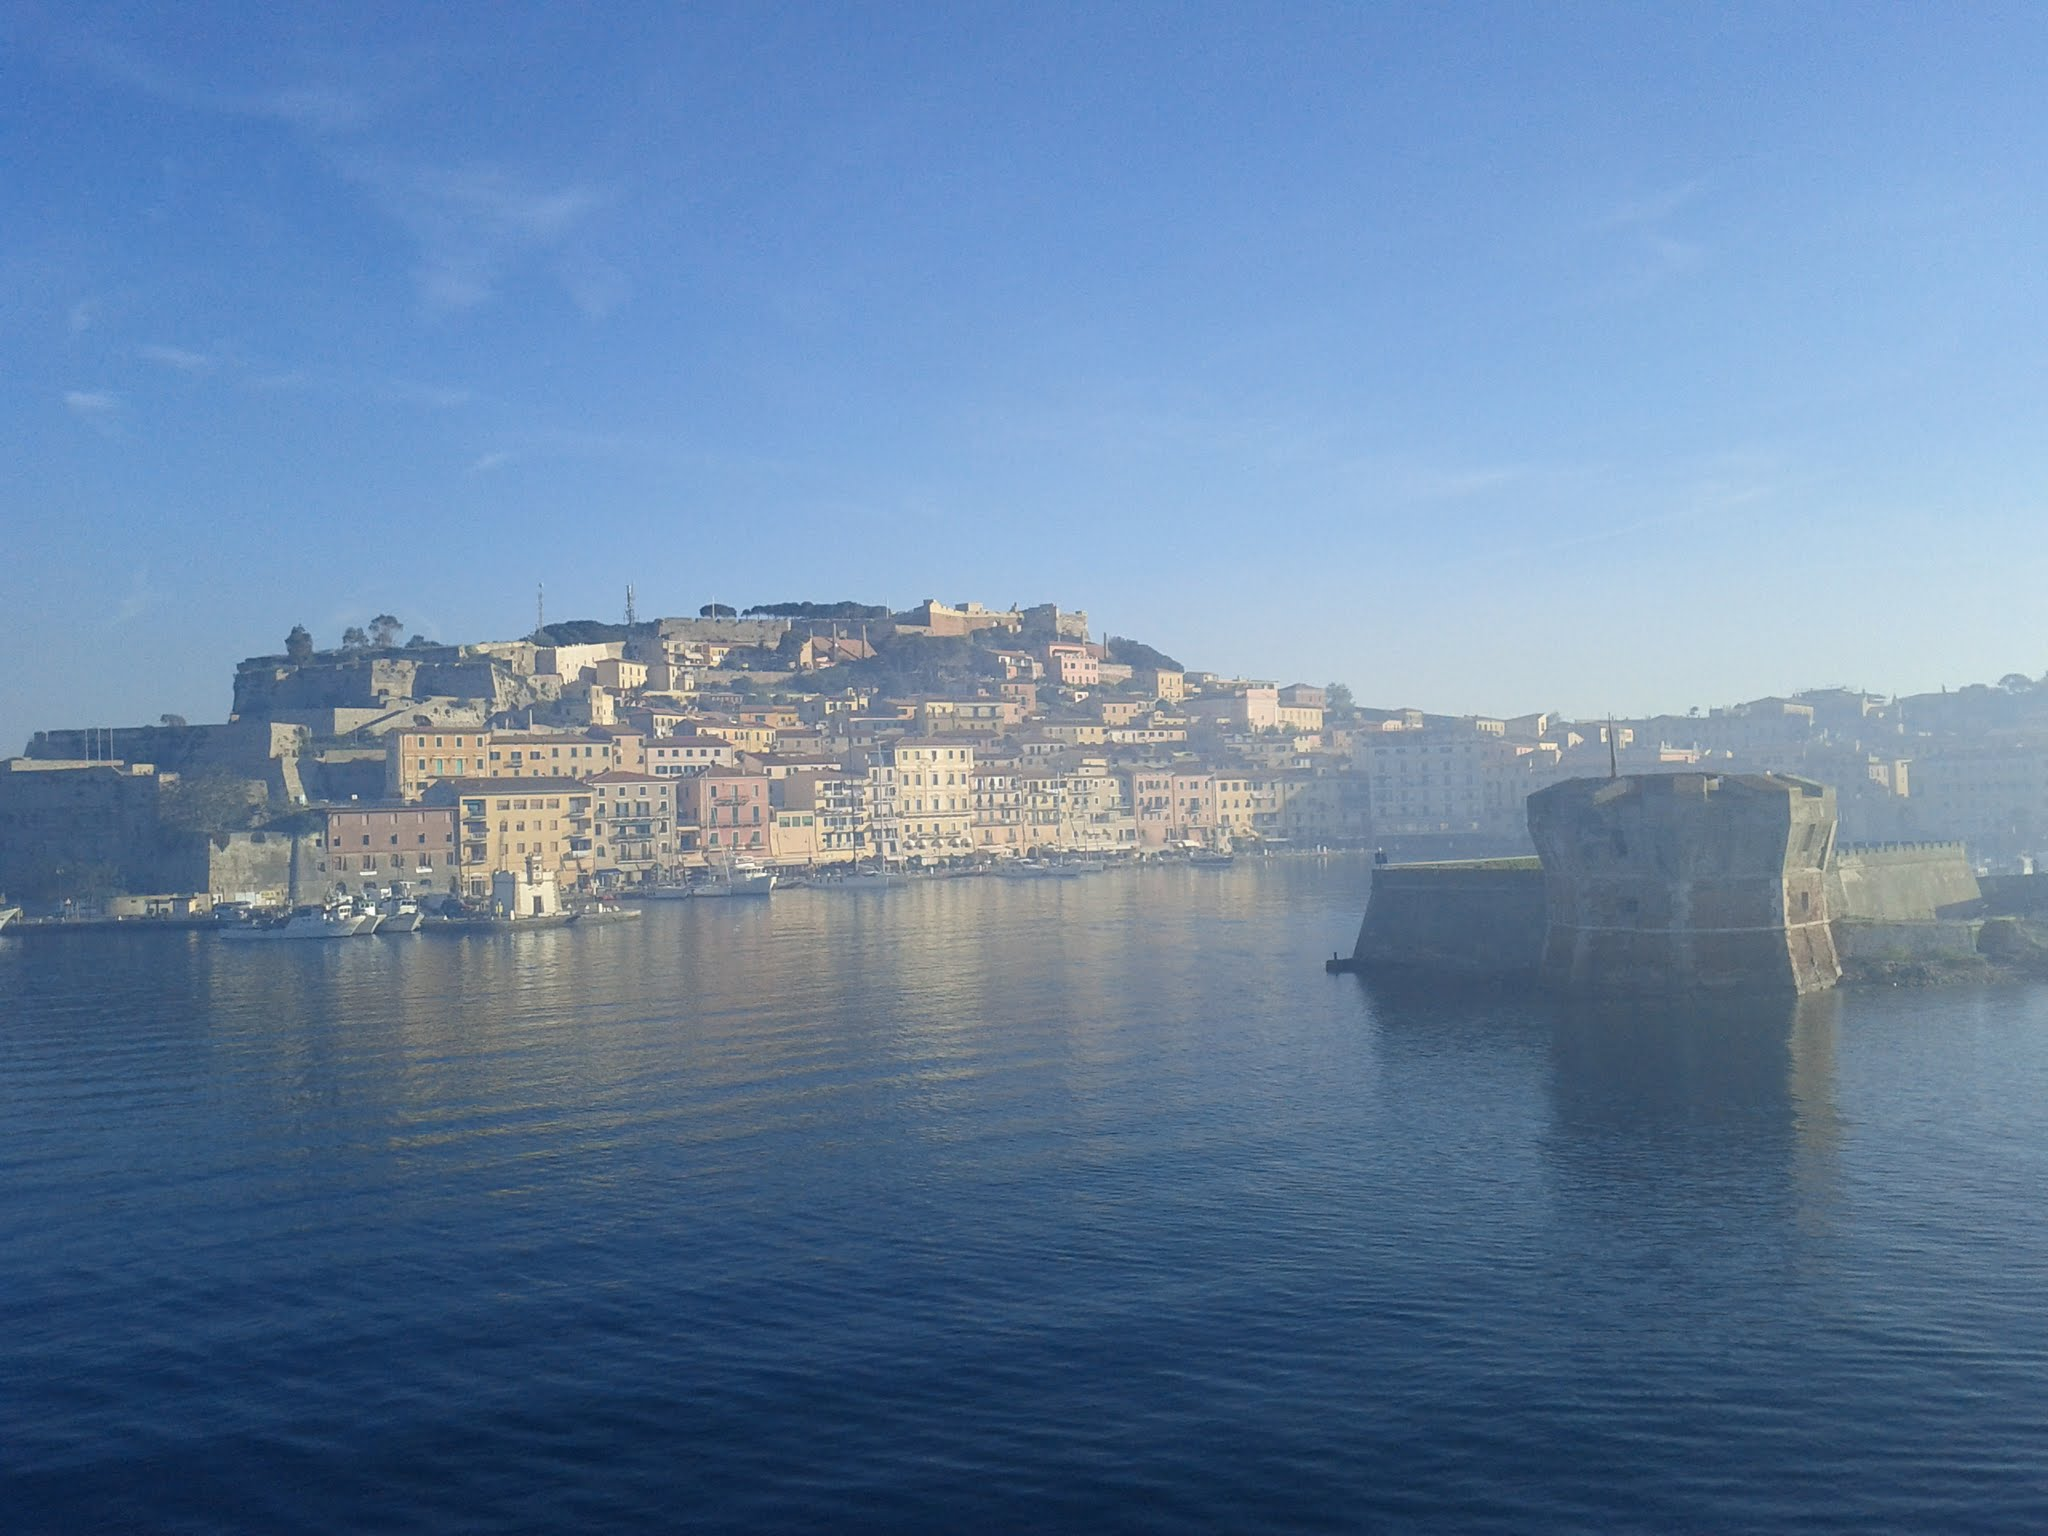 Portoferraio from the ferry